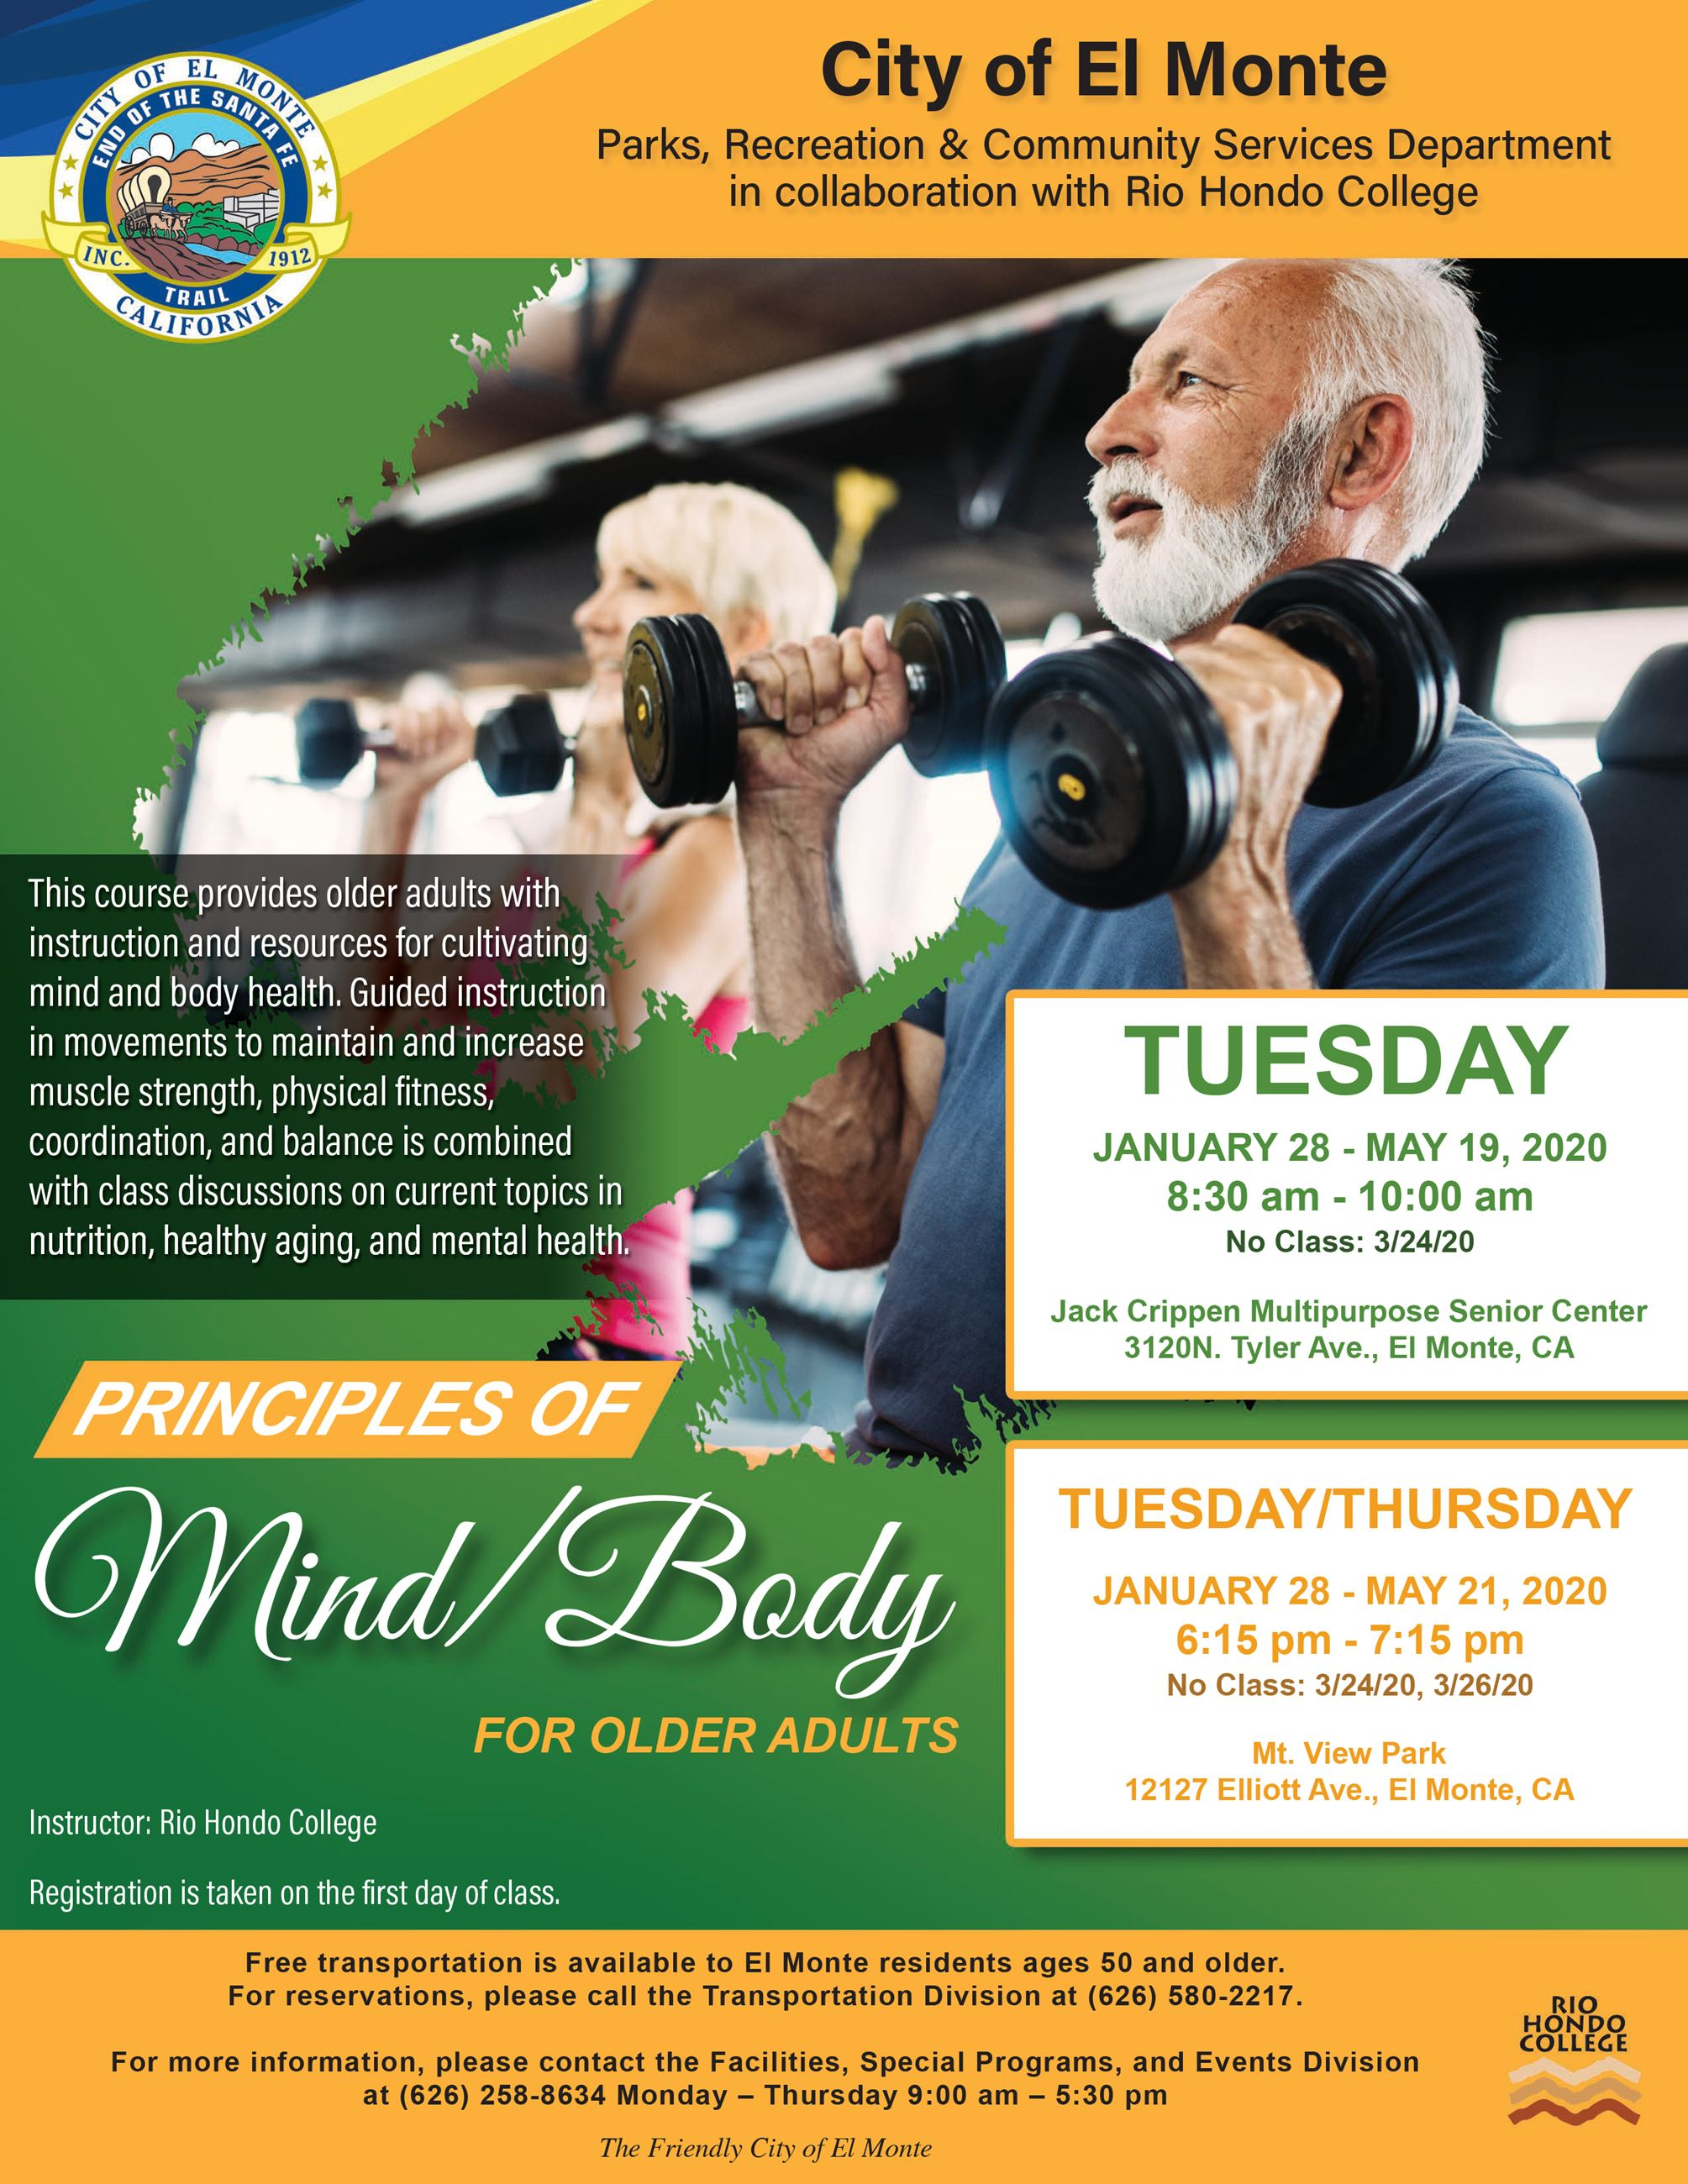 Principles of Mind Body for Older Adults Winter 2020 - 091019_edit 08